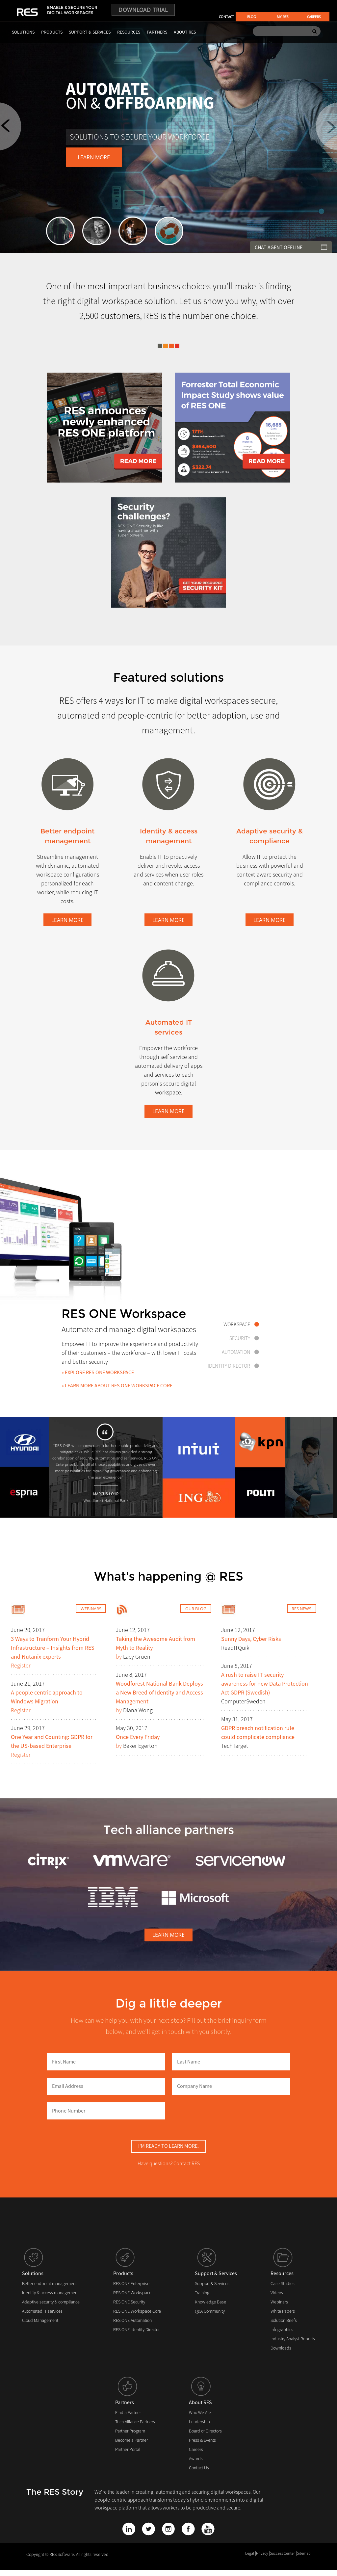 RES Software Competitors, Revenue and Employees - Owler Company Profile